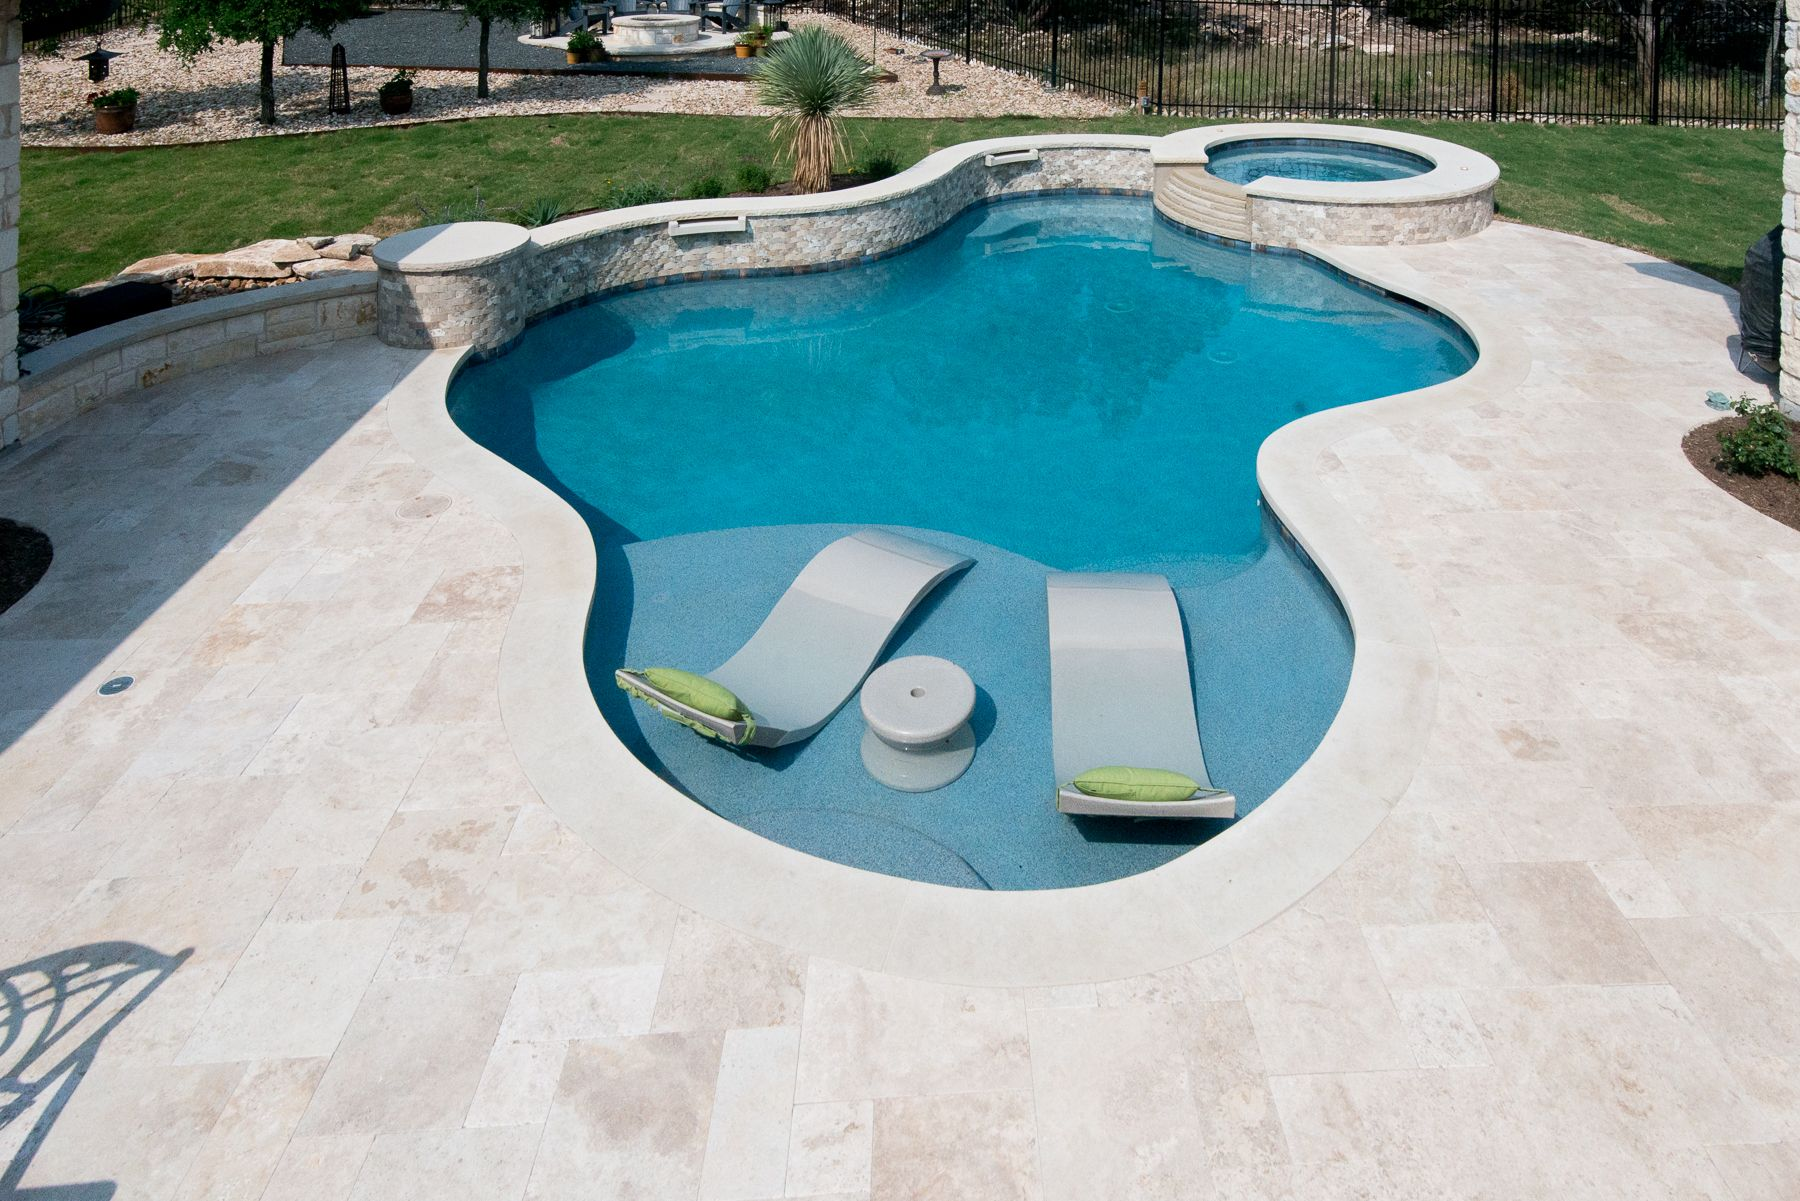 Travertine Deck With Lueder Coping Surrounding A Freeform Pool